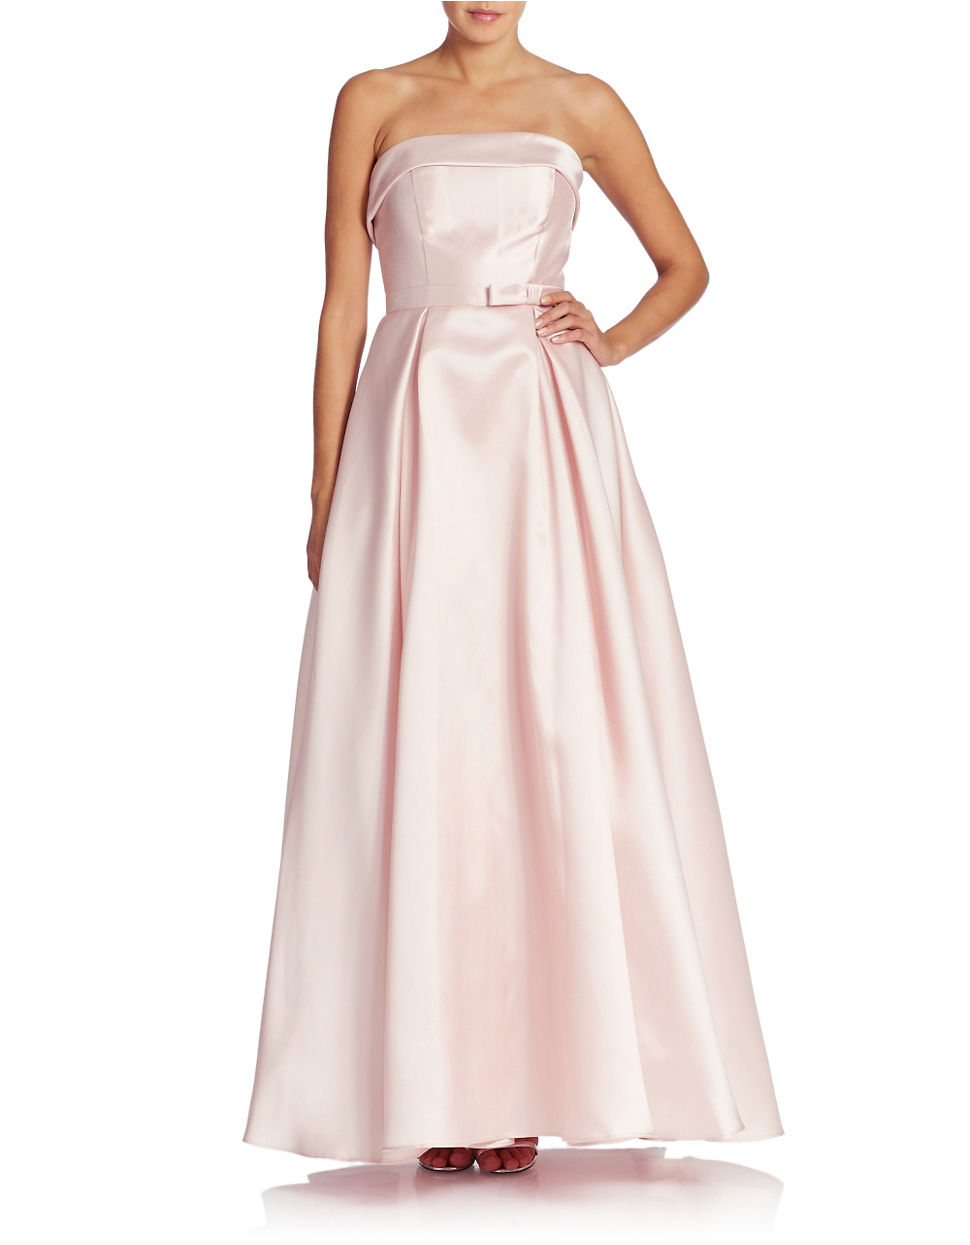 Lyst - Xscape Strapless Evening Gown in Pink